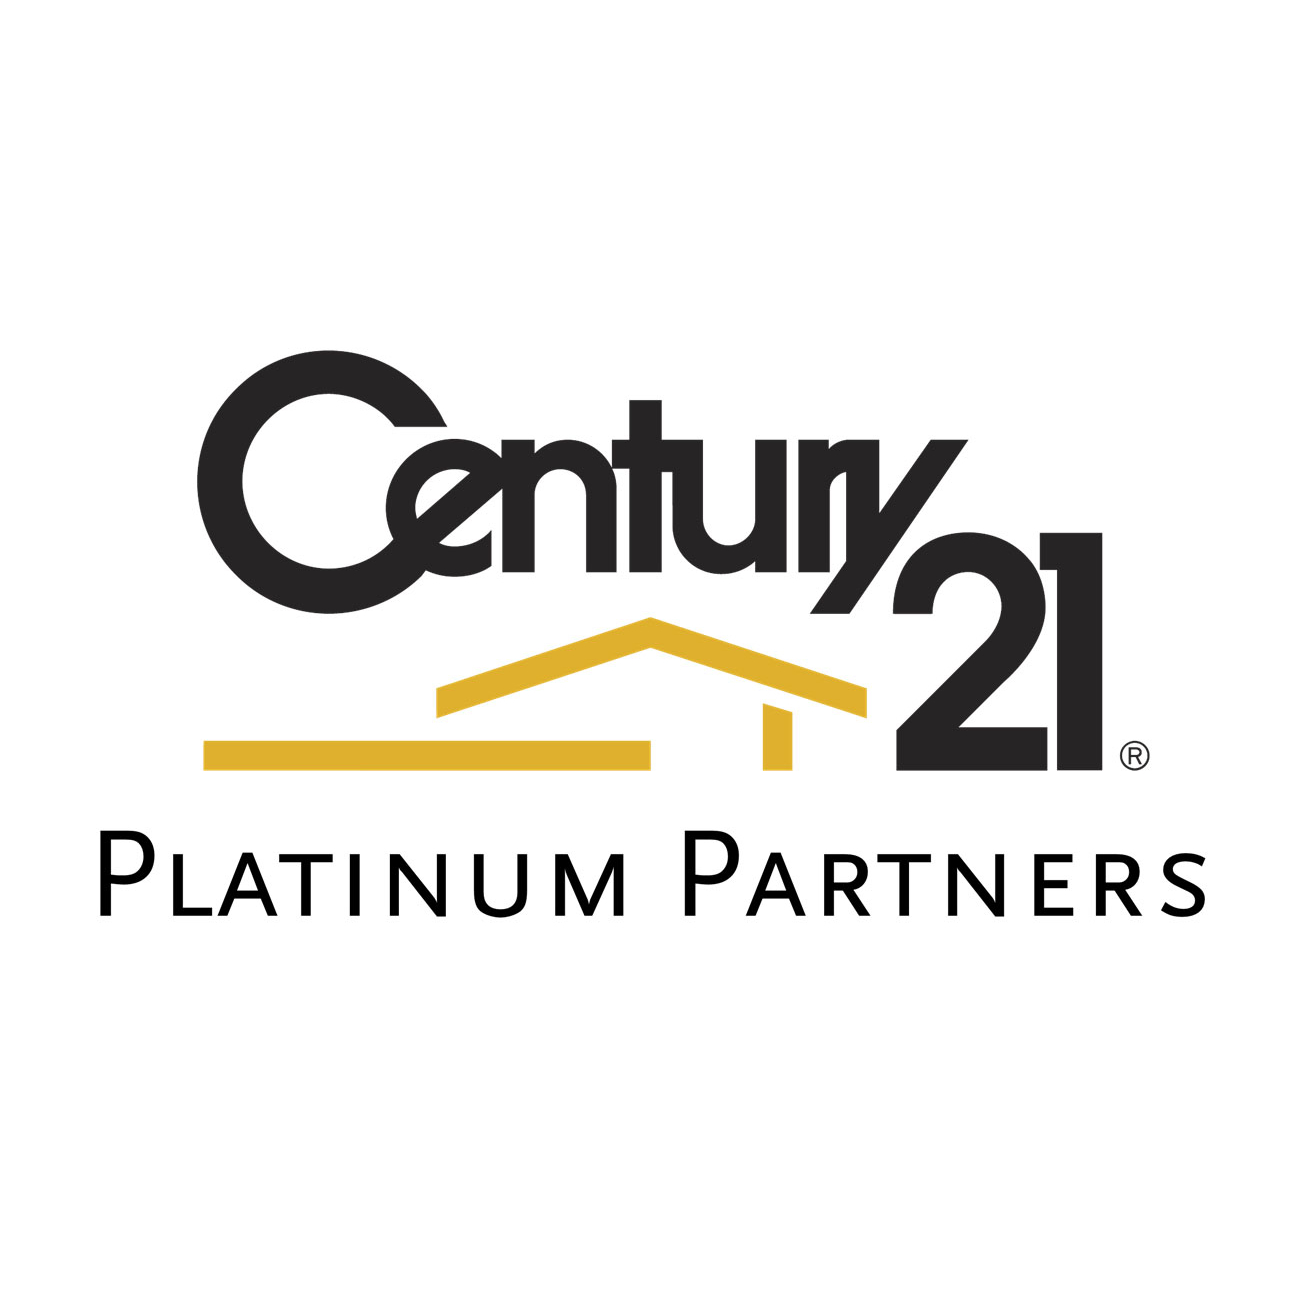 Century 21 Platinum Partners Atlanta Texas Tx